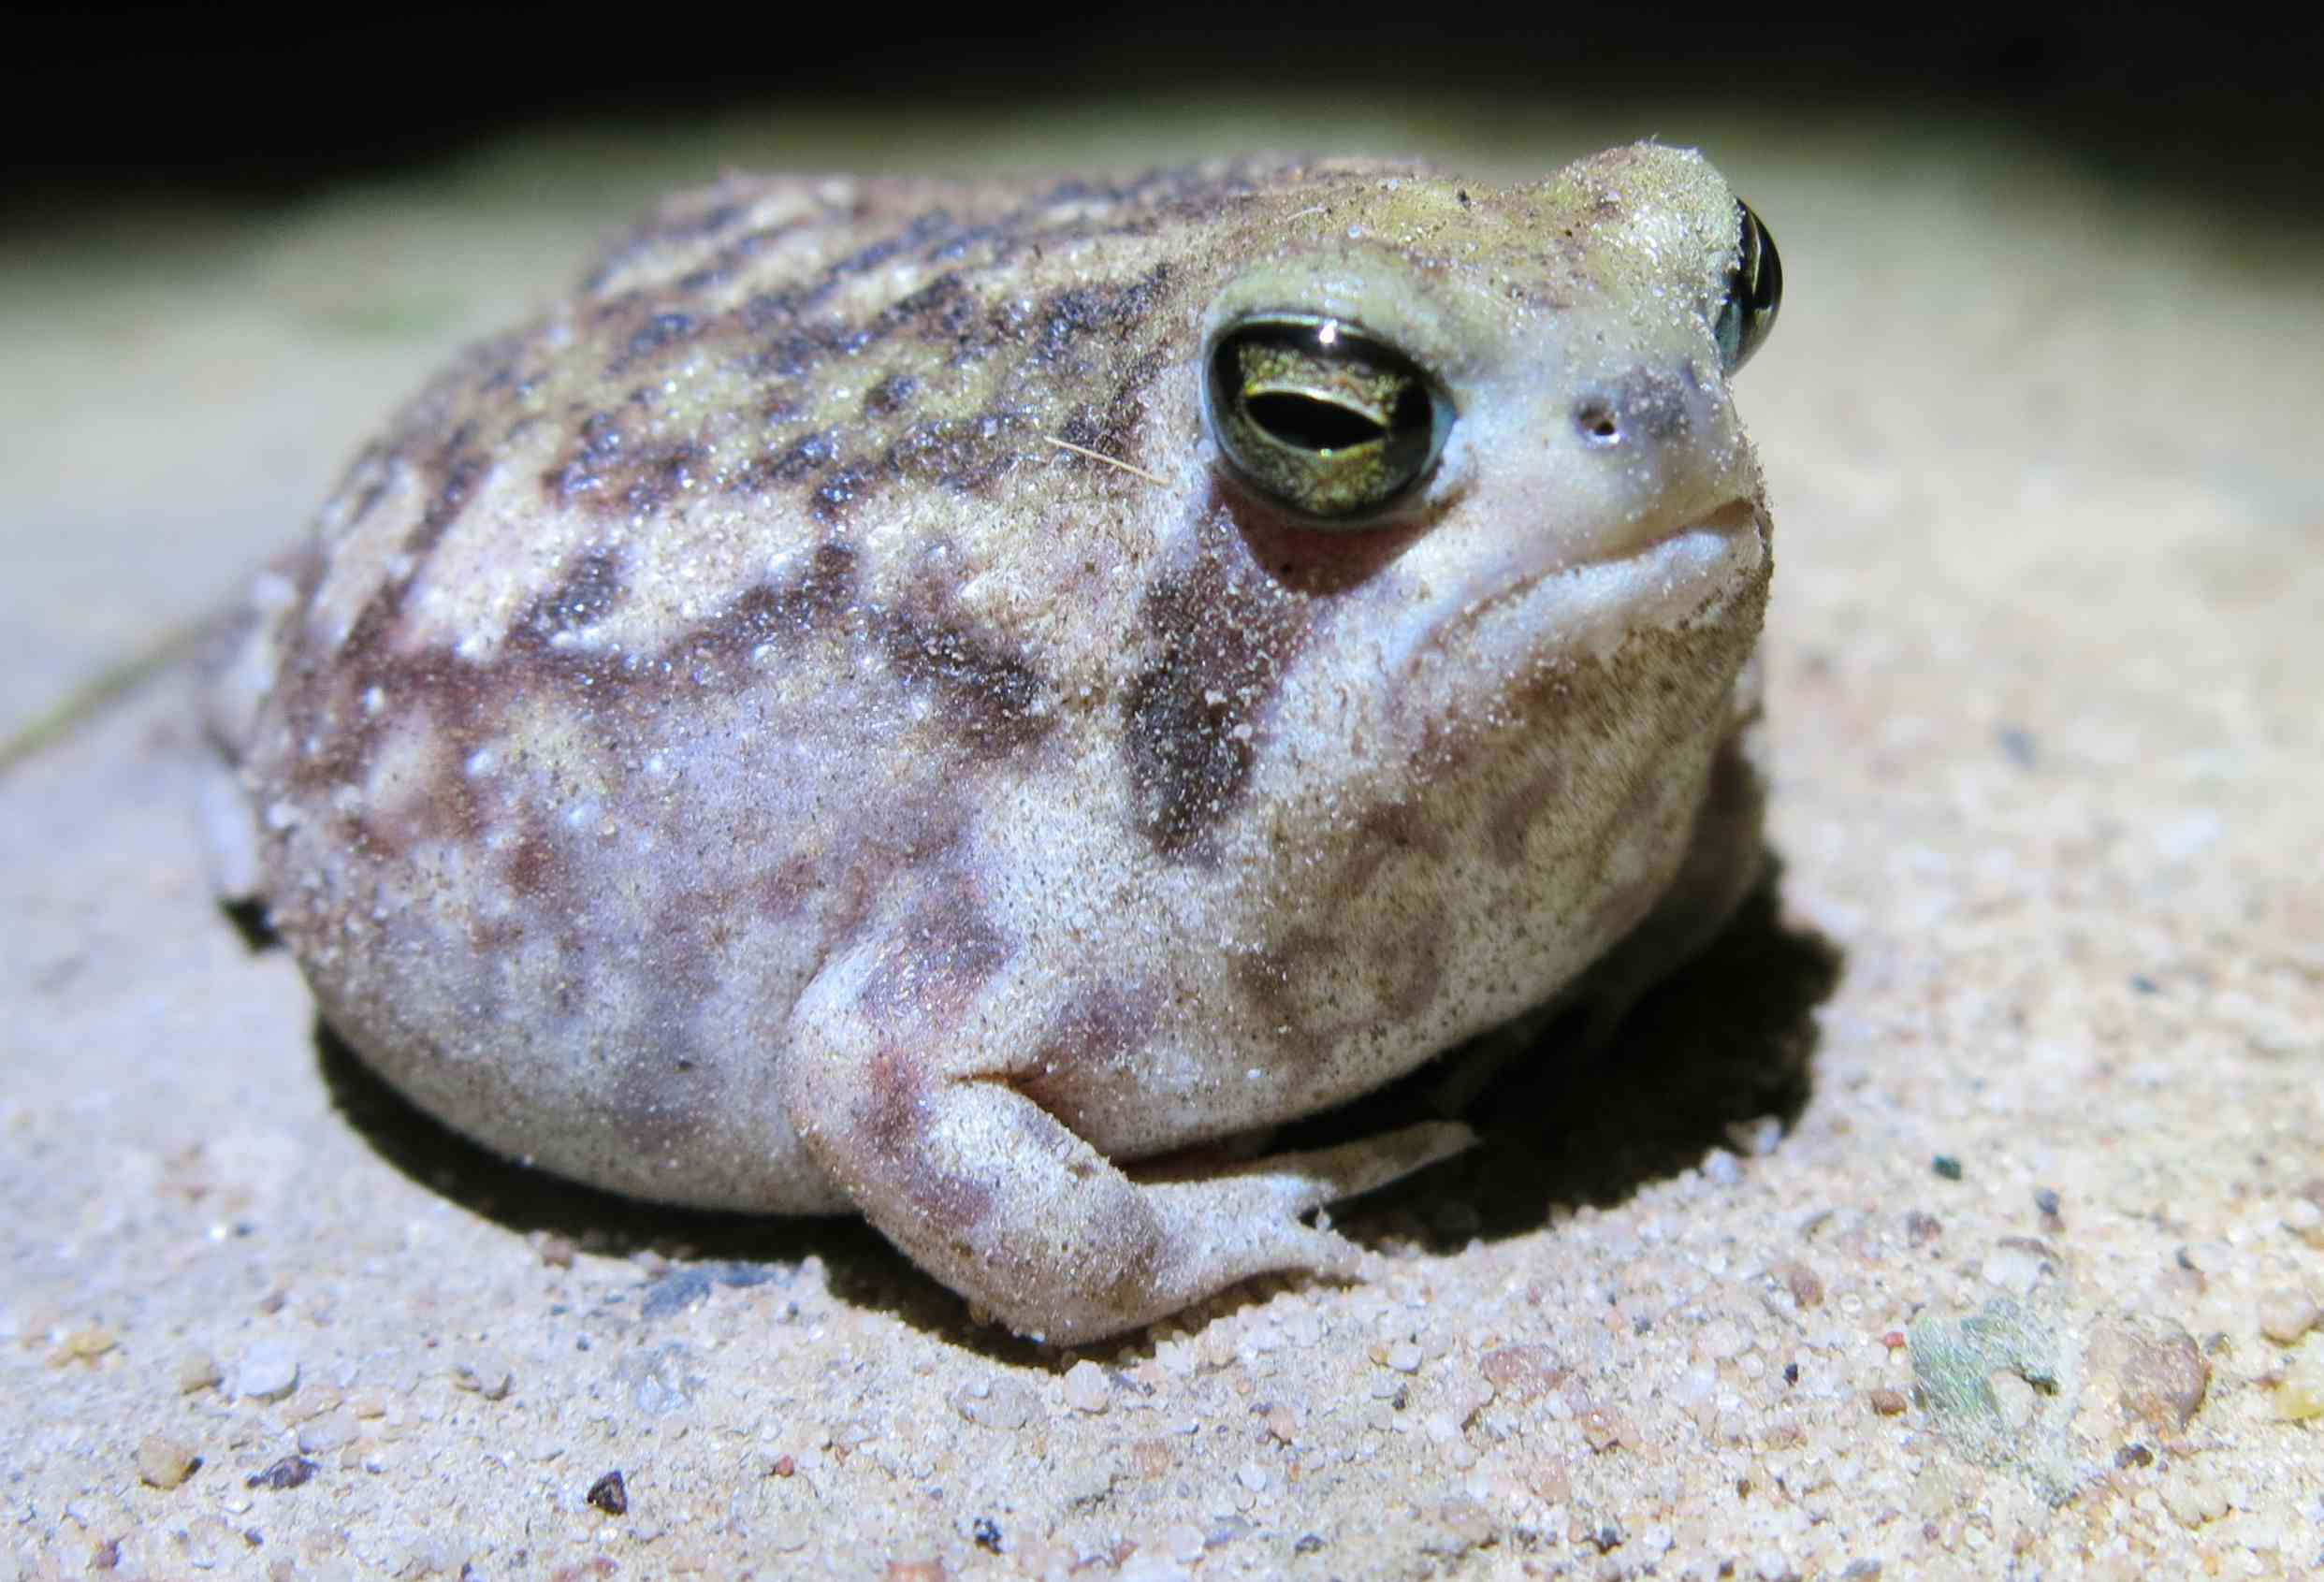 A rain frog sits on the sandy ground